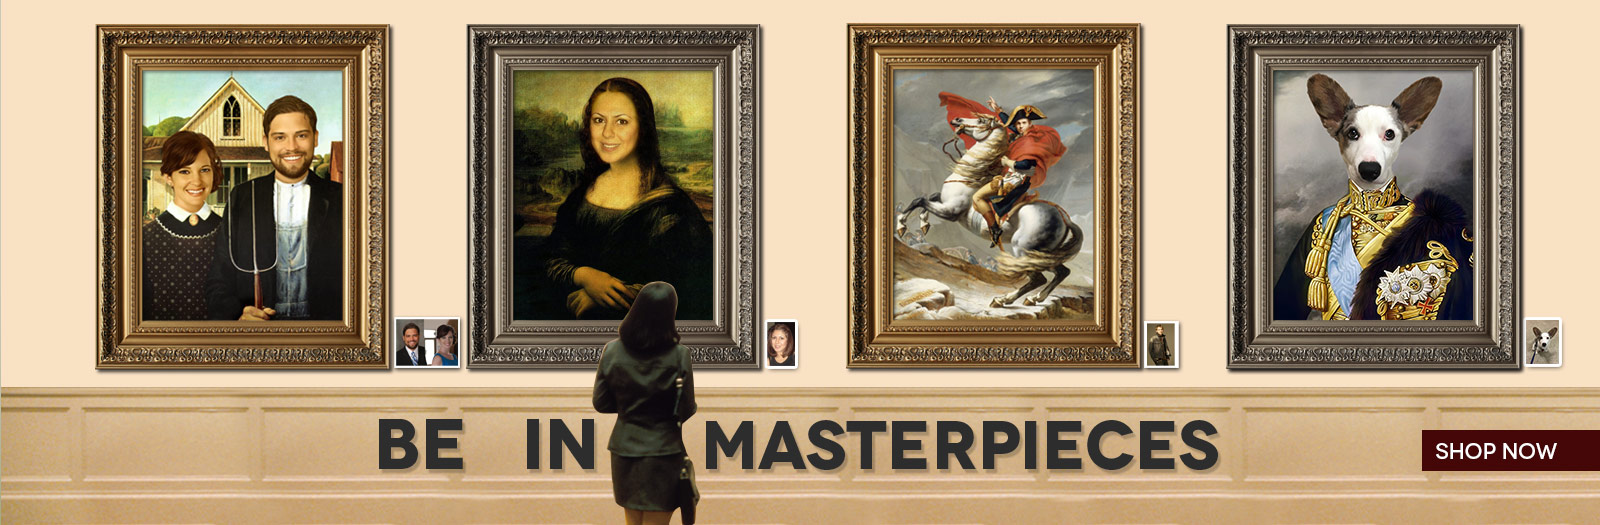 in-masterpieces